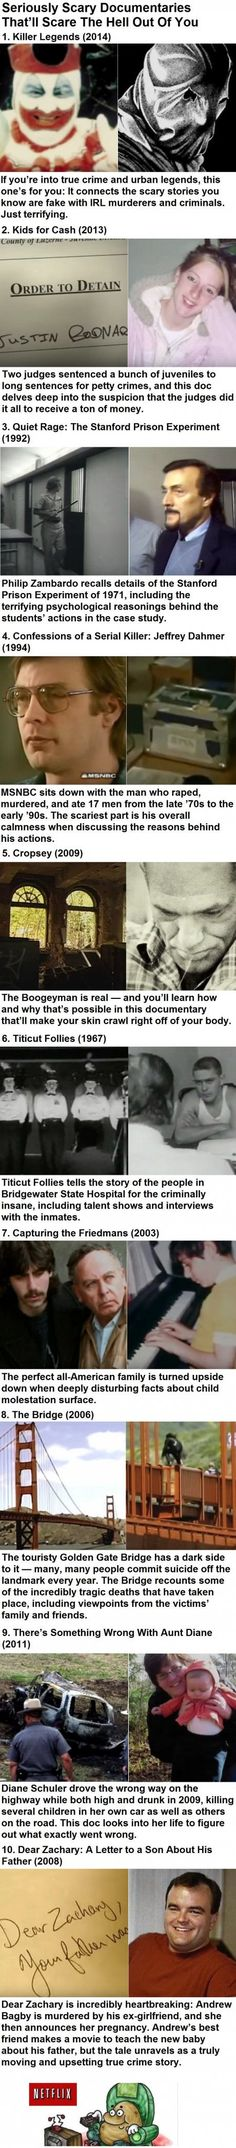 Seriously Scary Documentaries That'll Scare The Hell Out Of You